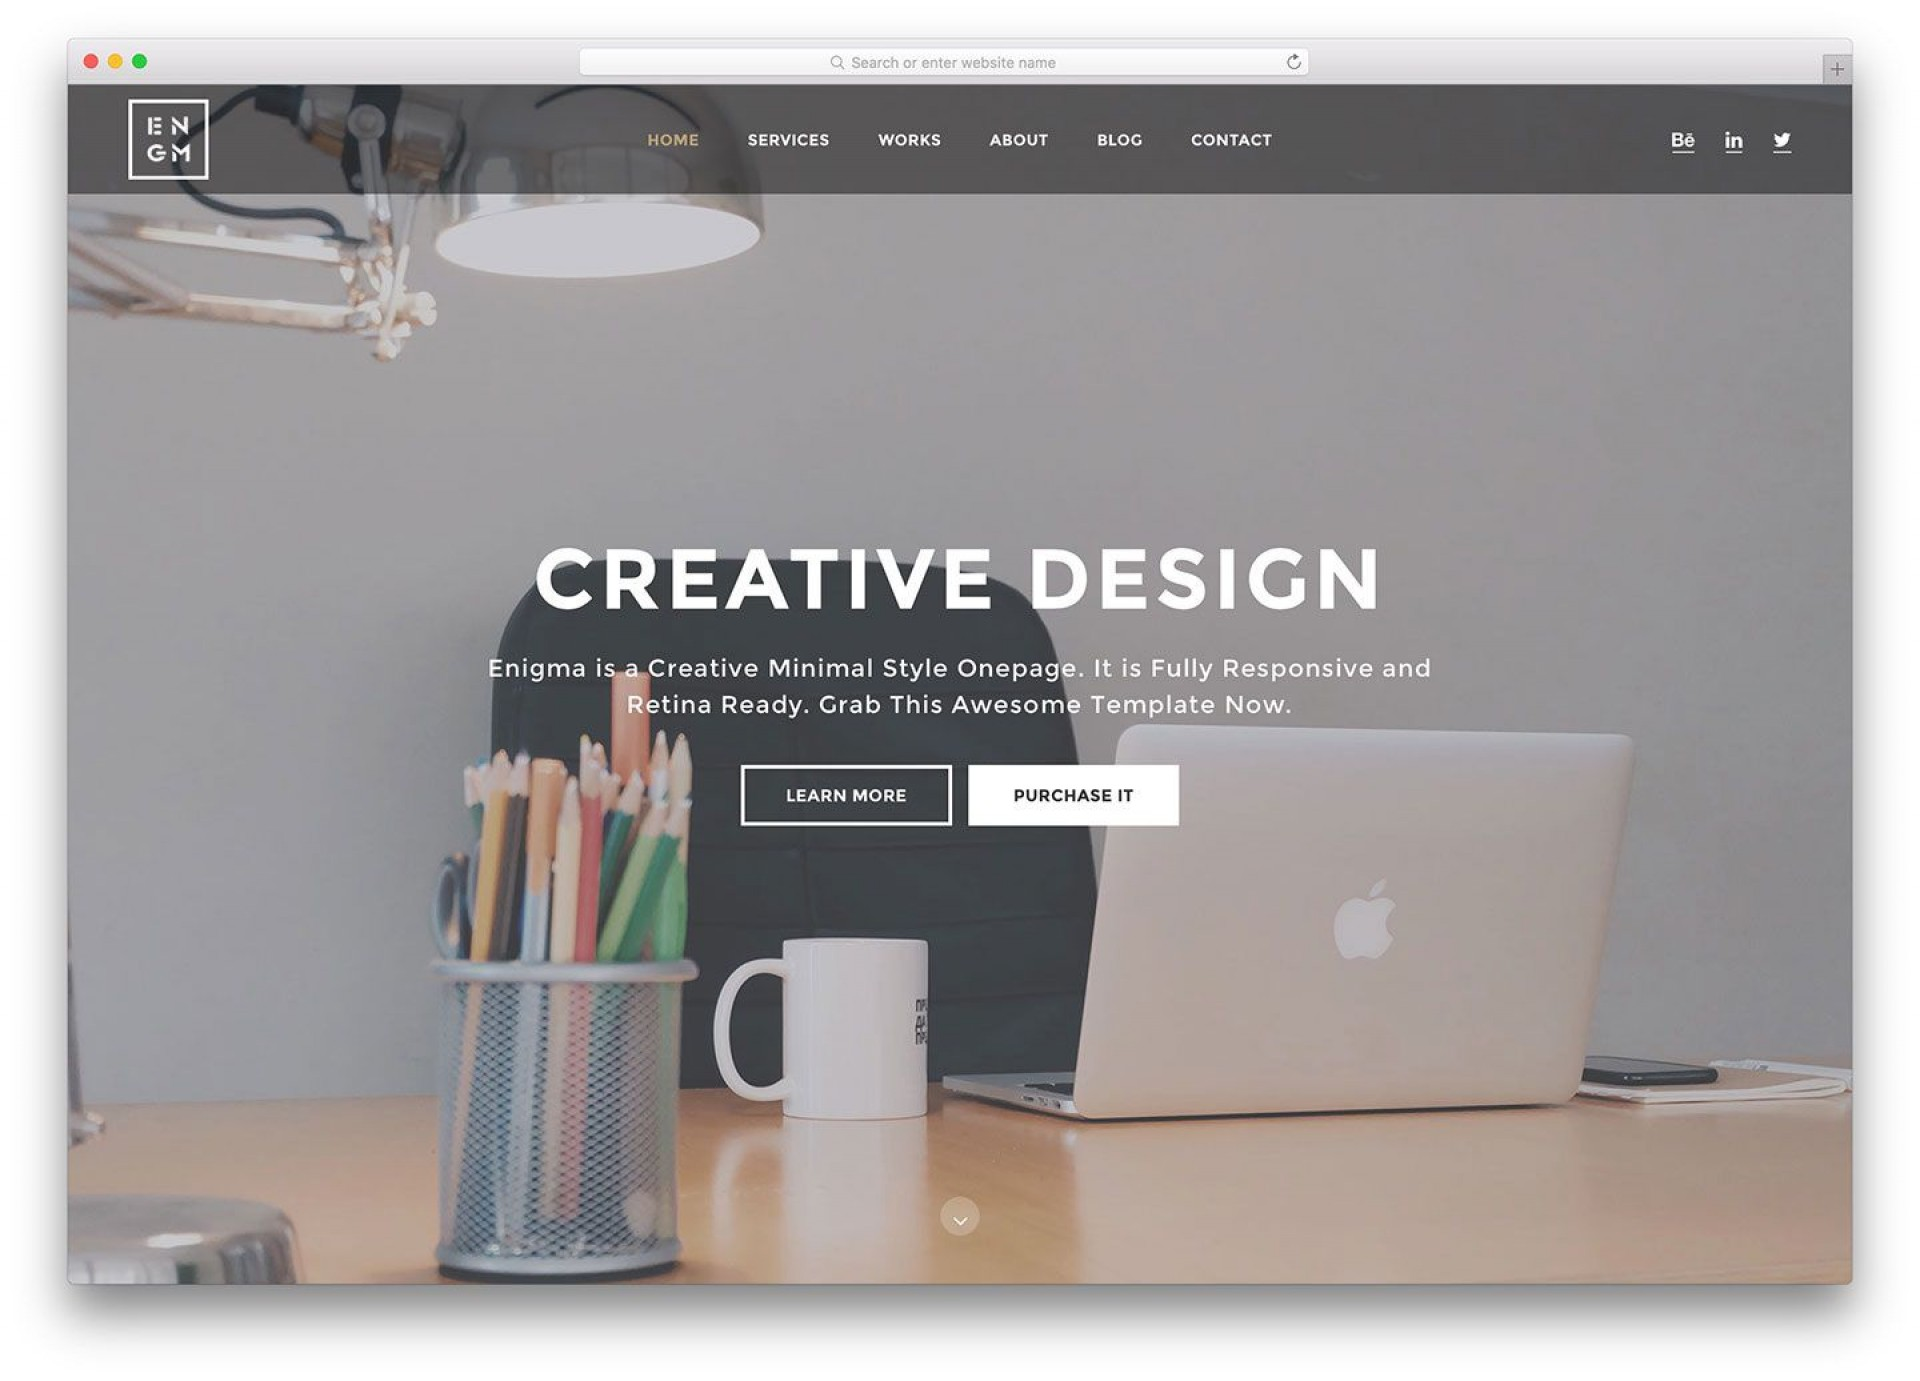 007 Breathtaking Download Web Template Html5 Highest Quality  Photography Website Free Logistic Busines1920